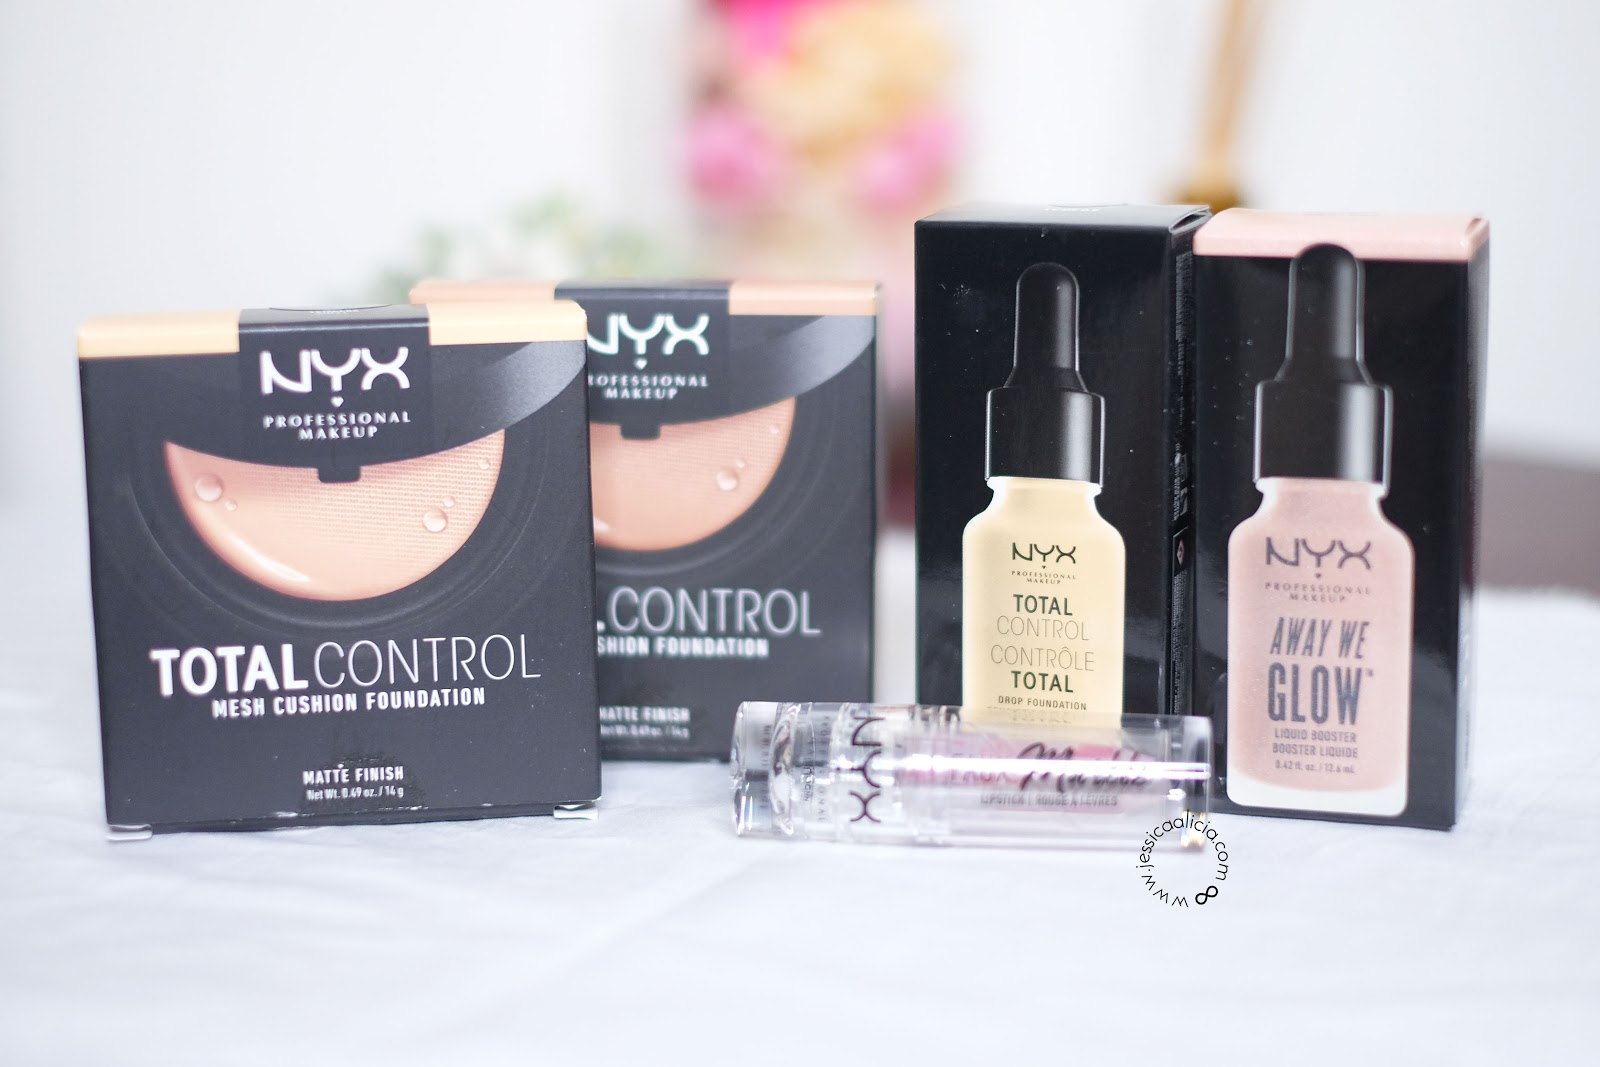 Review Nyx Cosmetics Total Control Mesh Cushion Foundation